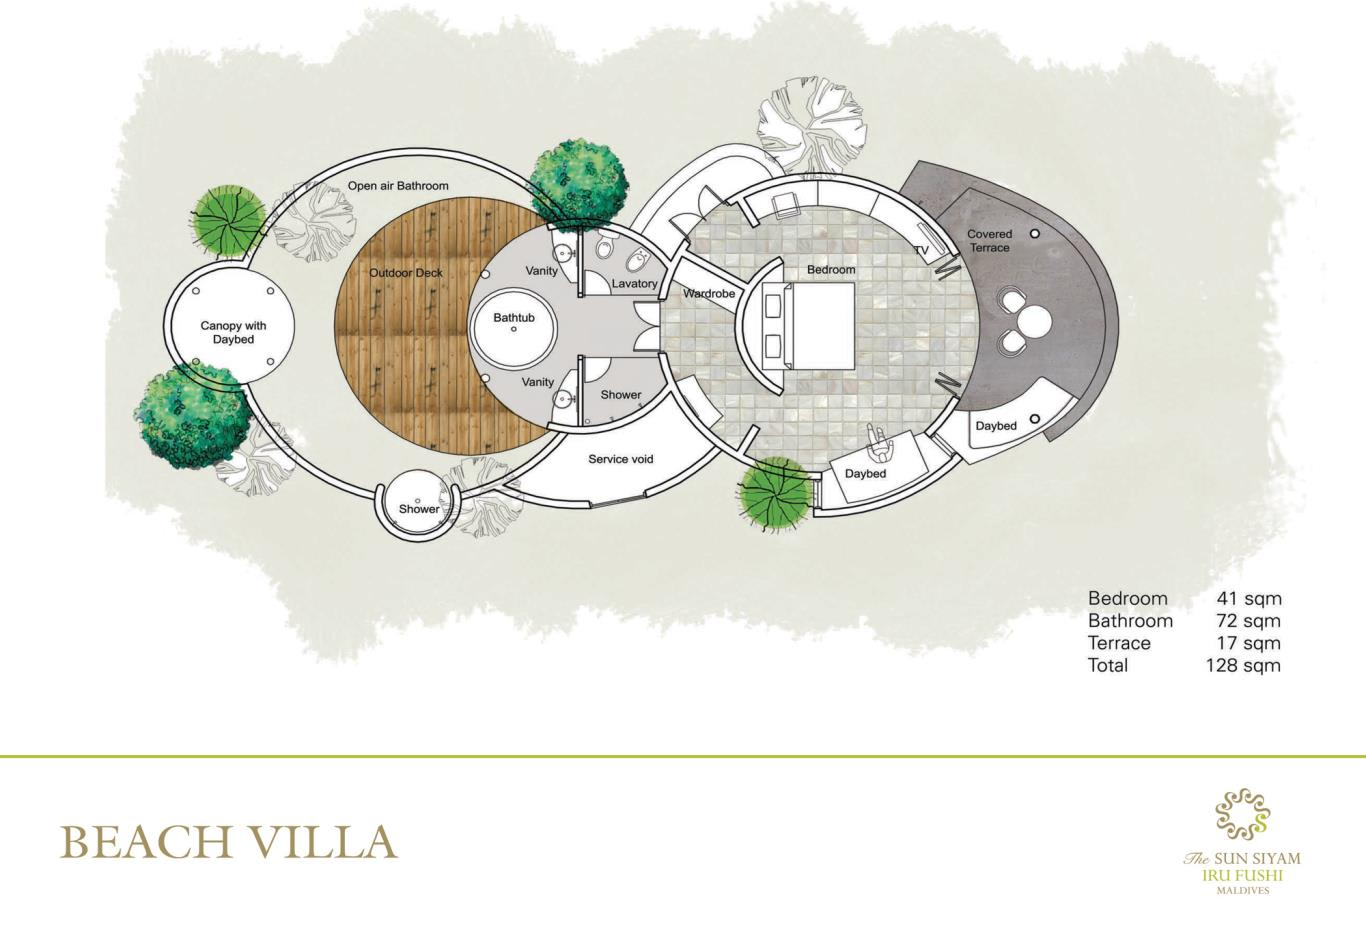 Beach Villa Floorplan